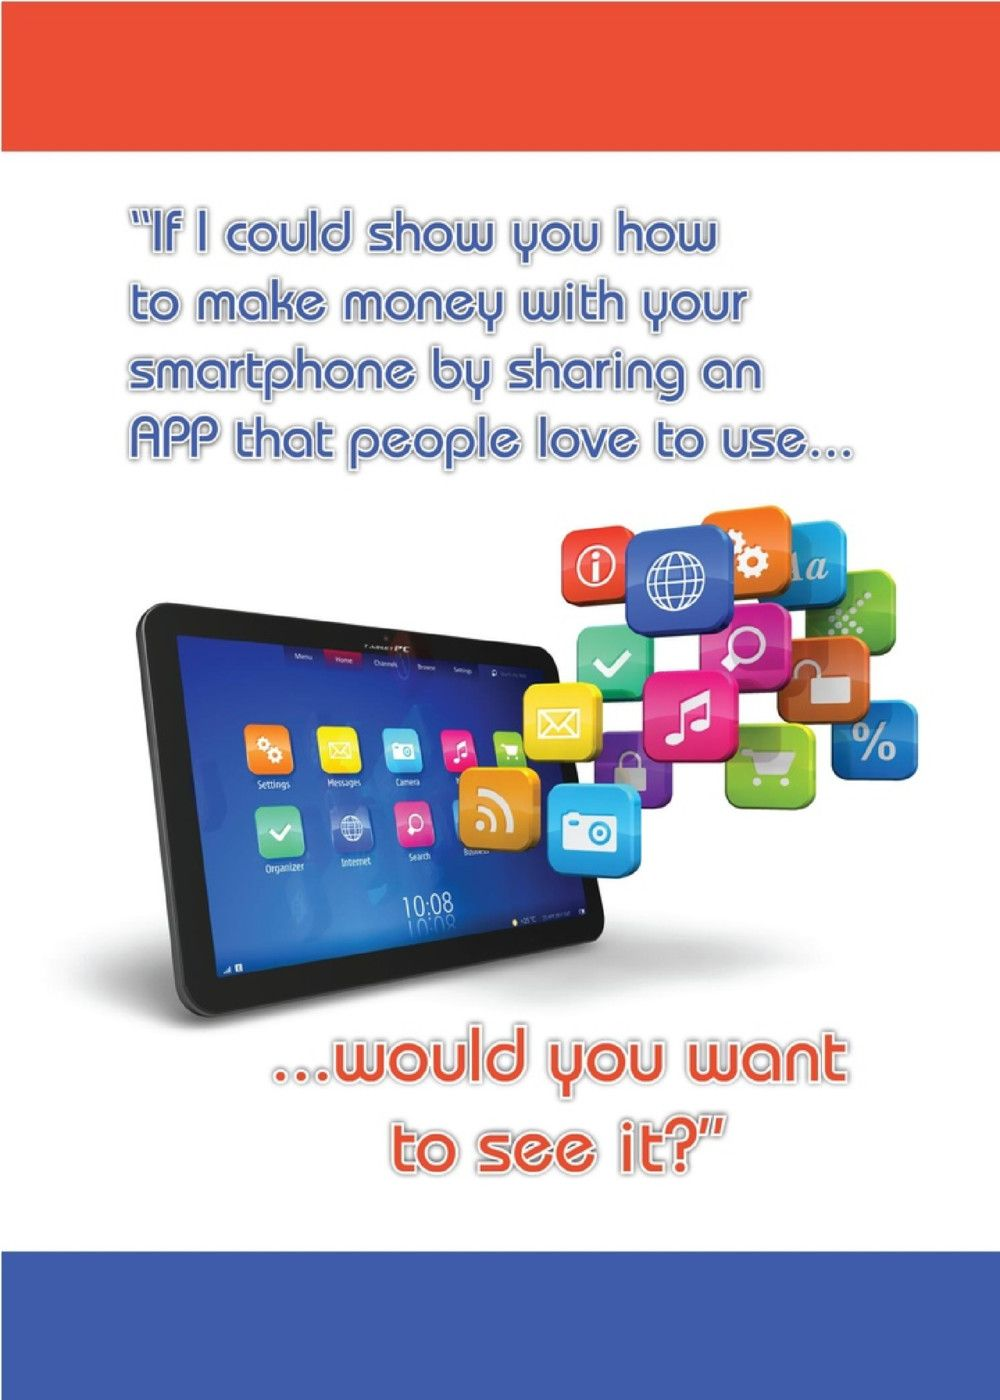 Did you know that you can make money with your smartphone